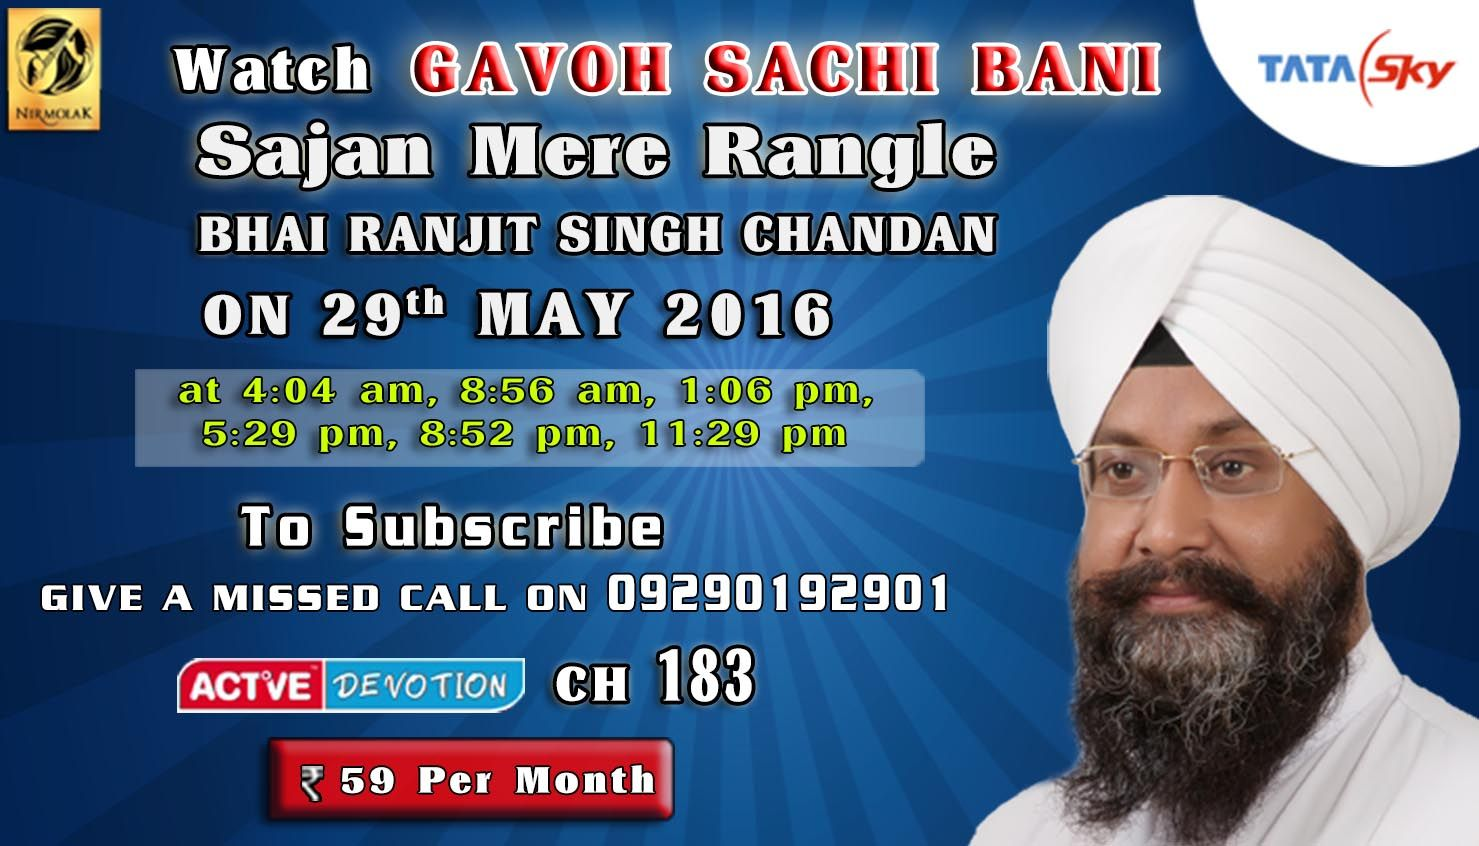 29th May Schedule of Tata Sky Active Devotion Gurbani Channel..  Watch Channel no 183 on Tata Sky to listen to Gurbani 24 hours. Facebook - https://www.facebook.com/nirmolakgurbaniofficial/ Downlaod The Mobile Application For 24 x 7 free gurbani kirtan -  Playstore - https://play.google.com/store/apps/details?id=com.init.nirmolak App Store - https://itunes.apple.com/us/app/nirmolak-gurbani/id1084234941?mt=8